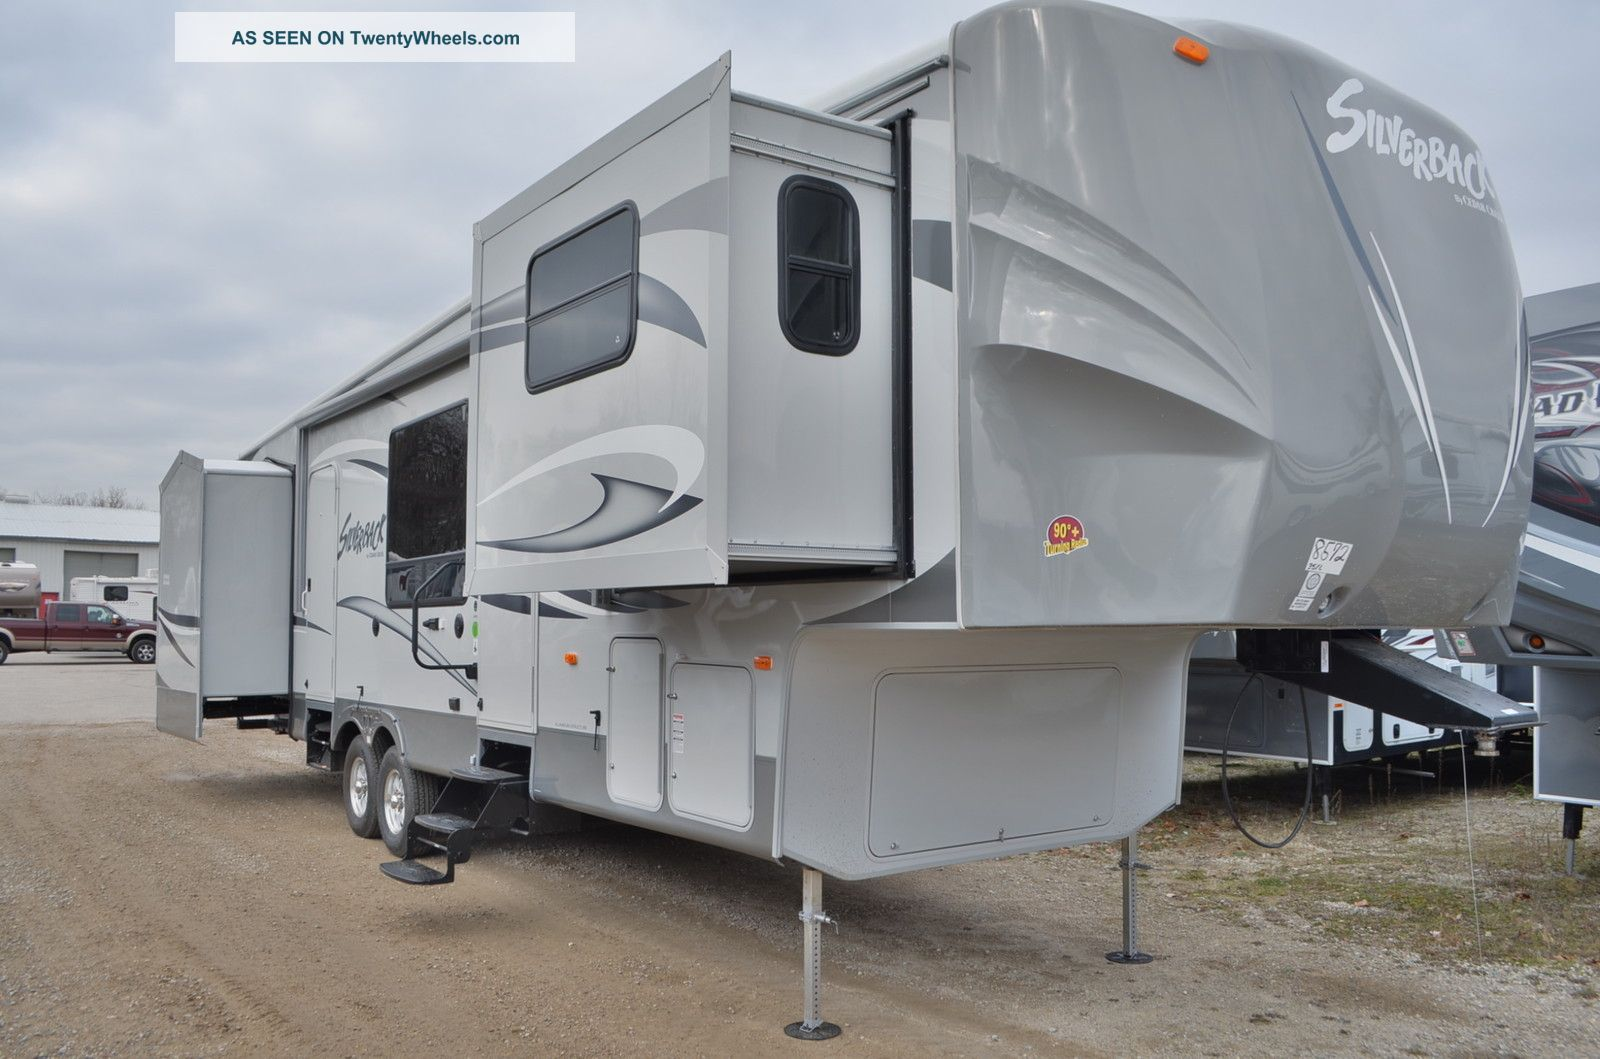 2013 Forest River Cedar Creek Silverback 35fl Fifth Wheel RVs photo